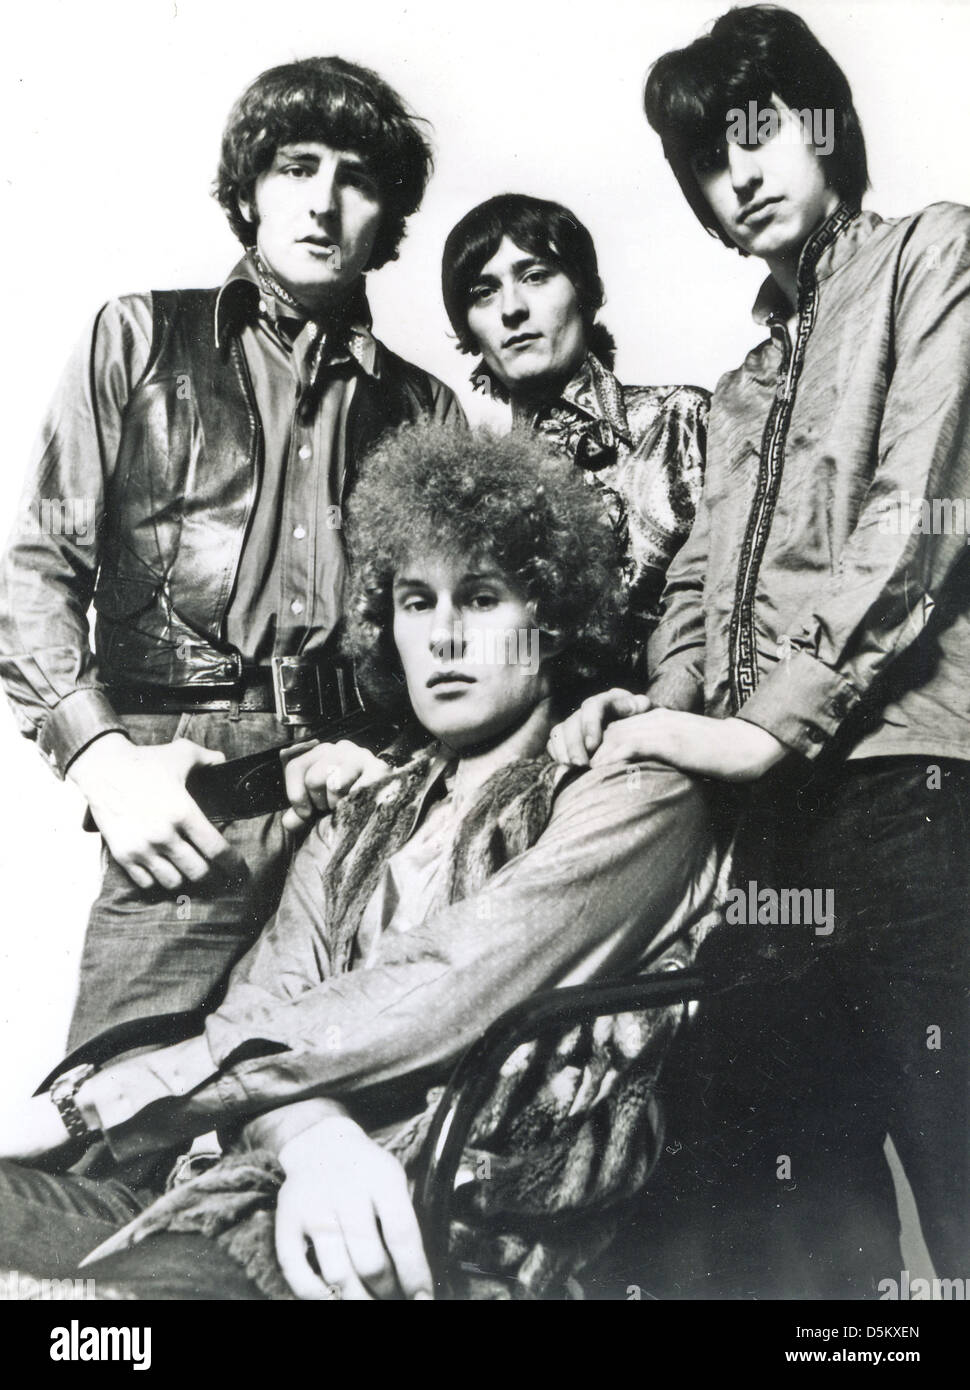 TEN YEARS AFTER  Promotional photo of UK Blues-Rock group about 1968 - Stock Image